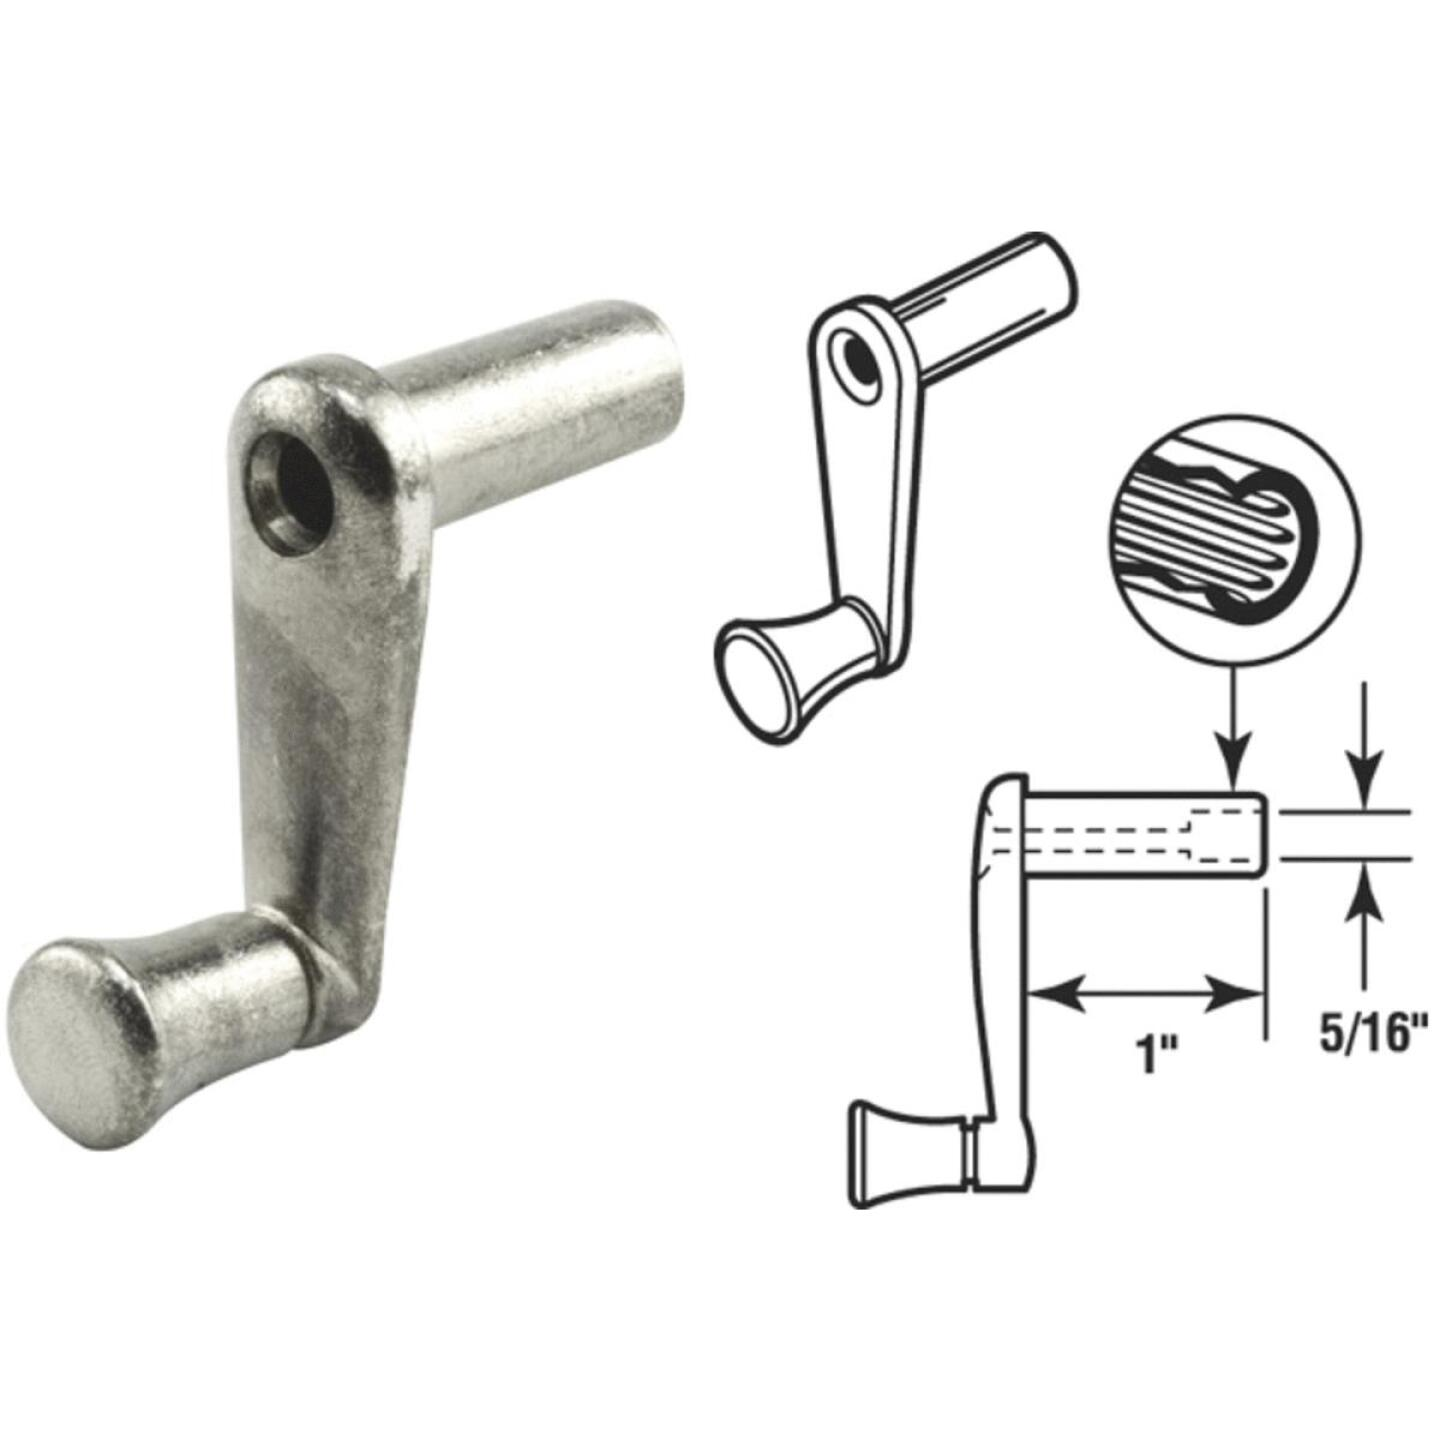 Slide-Co 1 In. Aluminum Casement Window Crank Handle Image 1